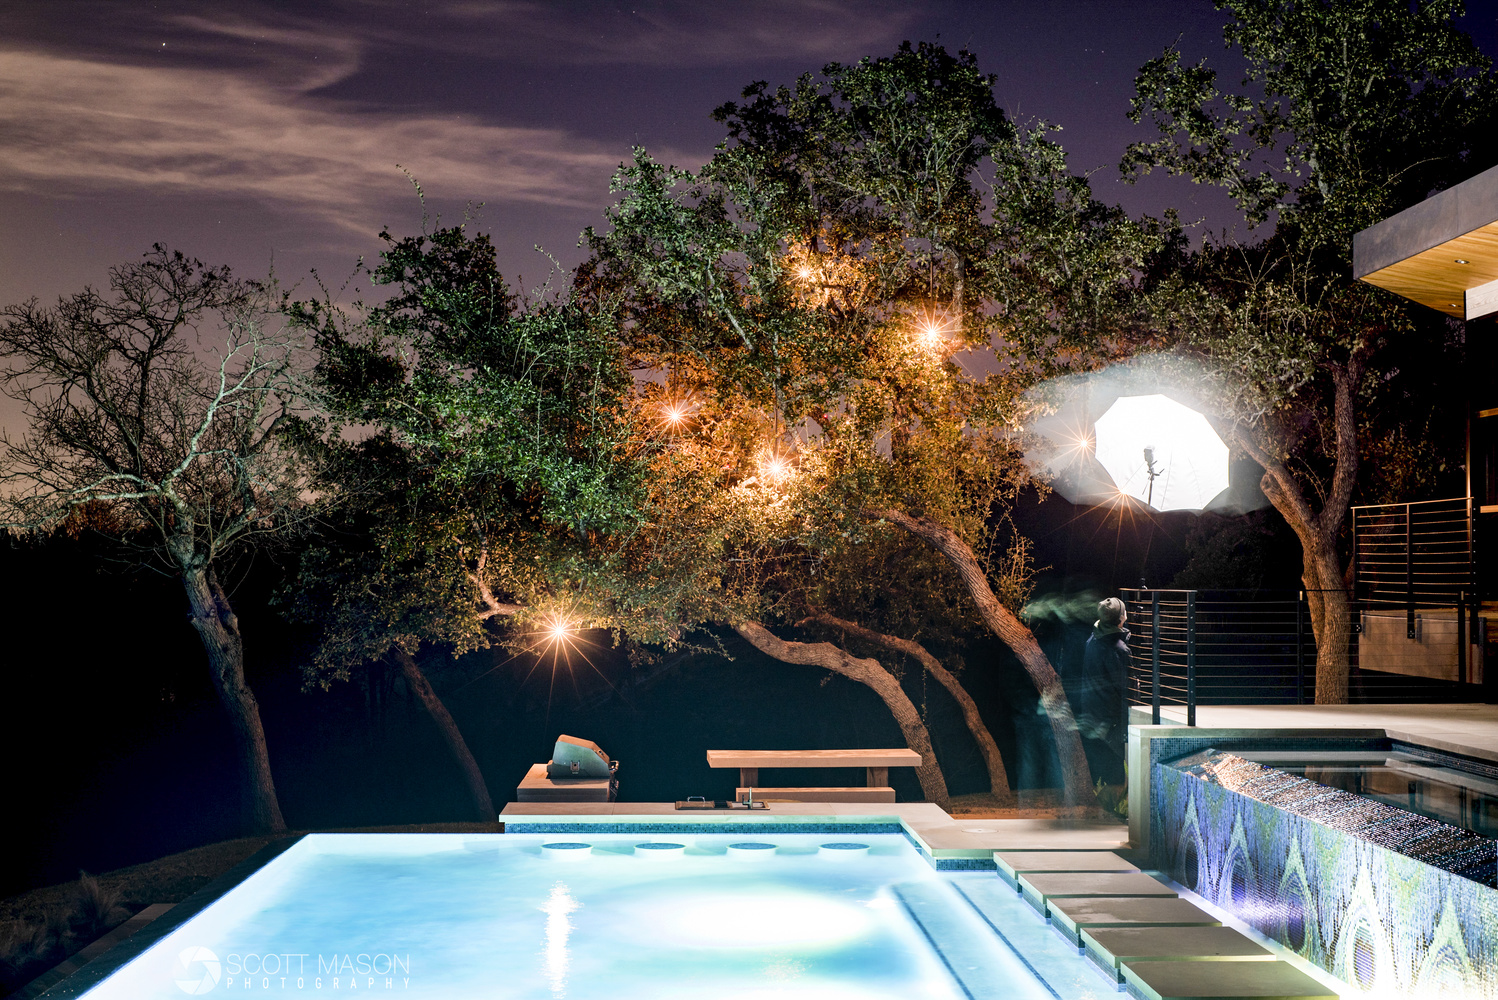 a photographer witha  strobe and umbrella lighting trees next to a pool